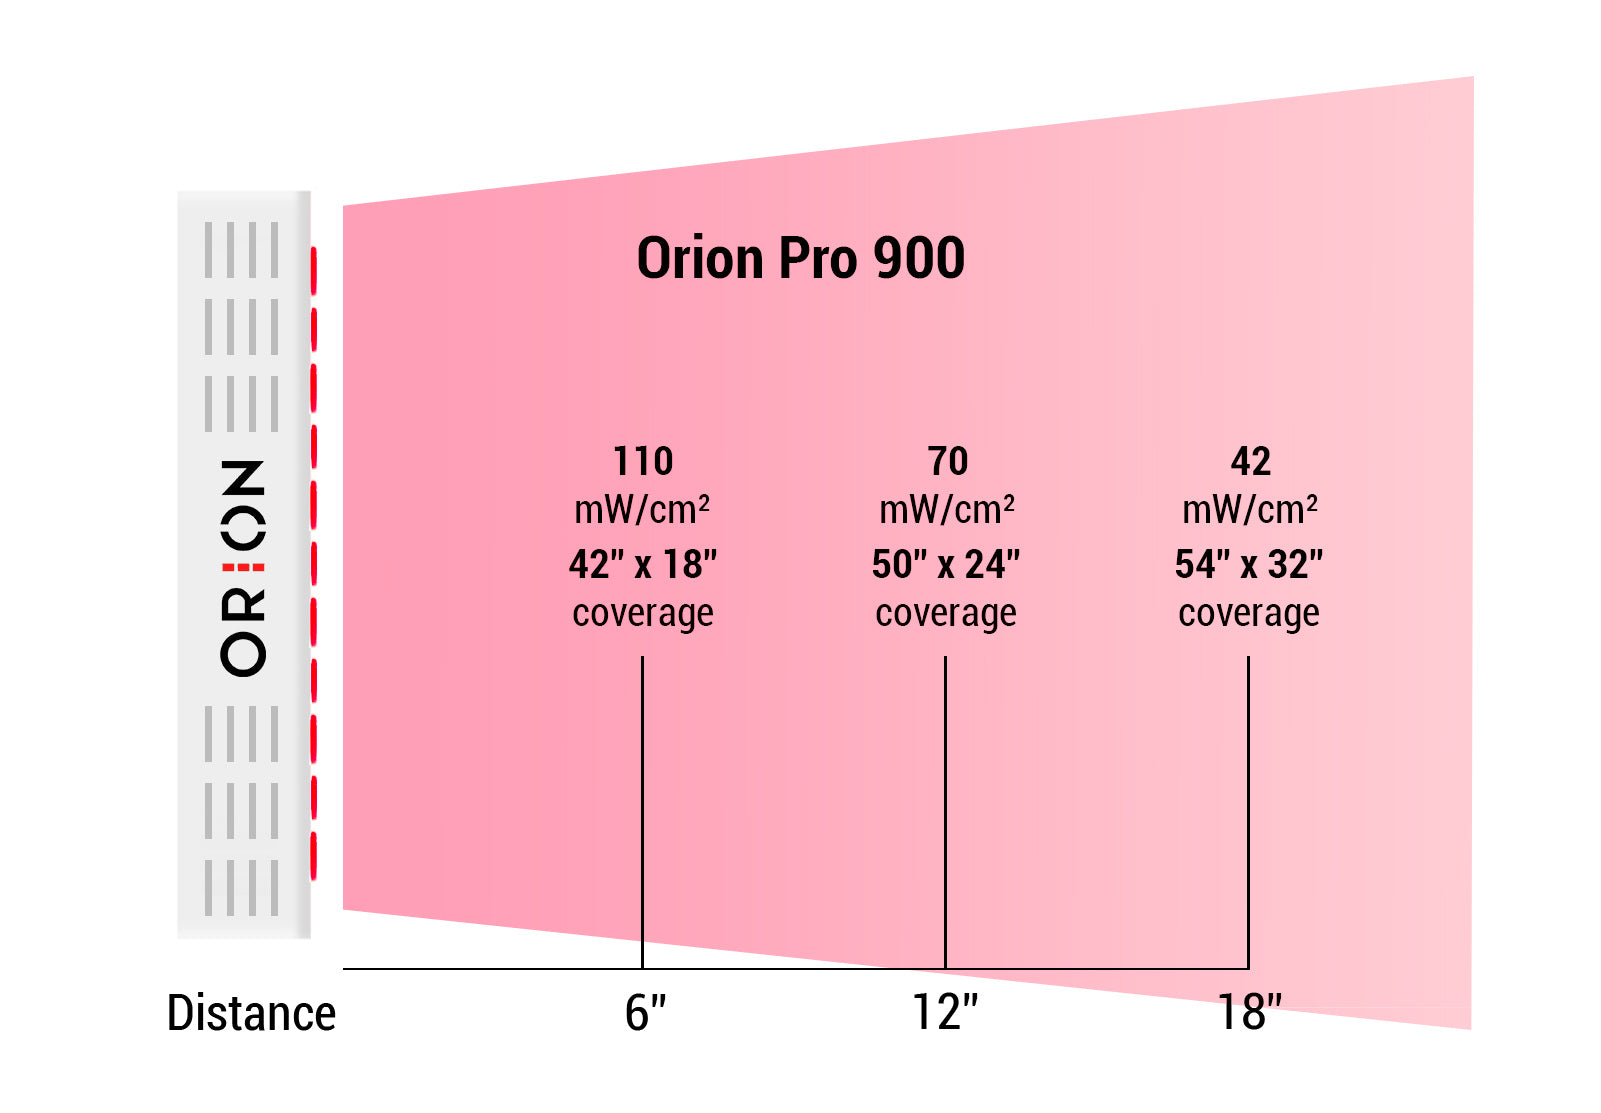 Orion Pro 900 Irradiance levels at 3, 6, 12, and 18 inches. Orion Red Light Therapy.